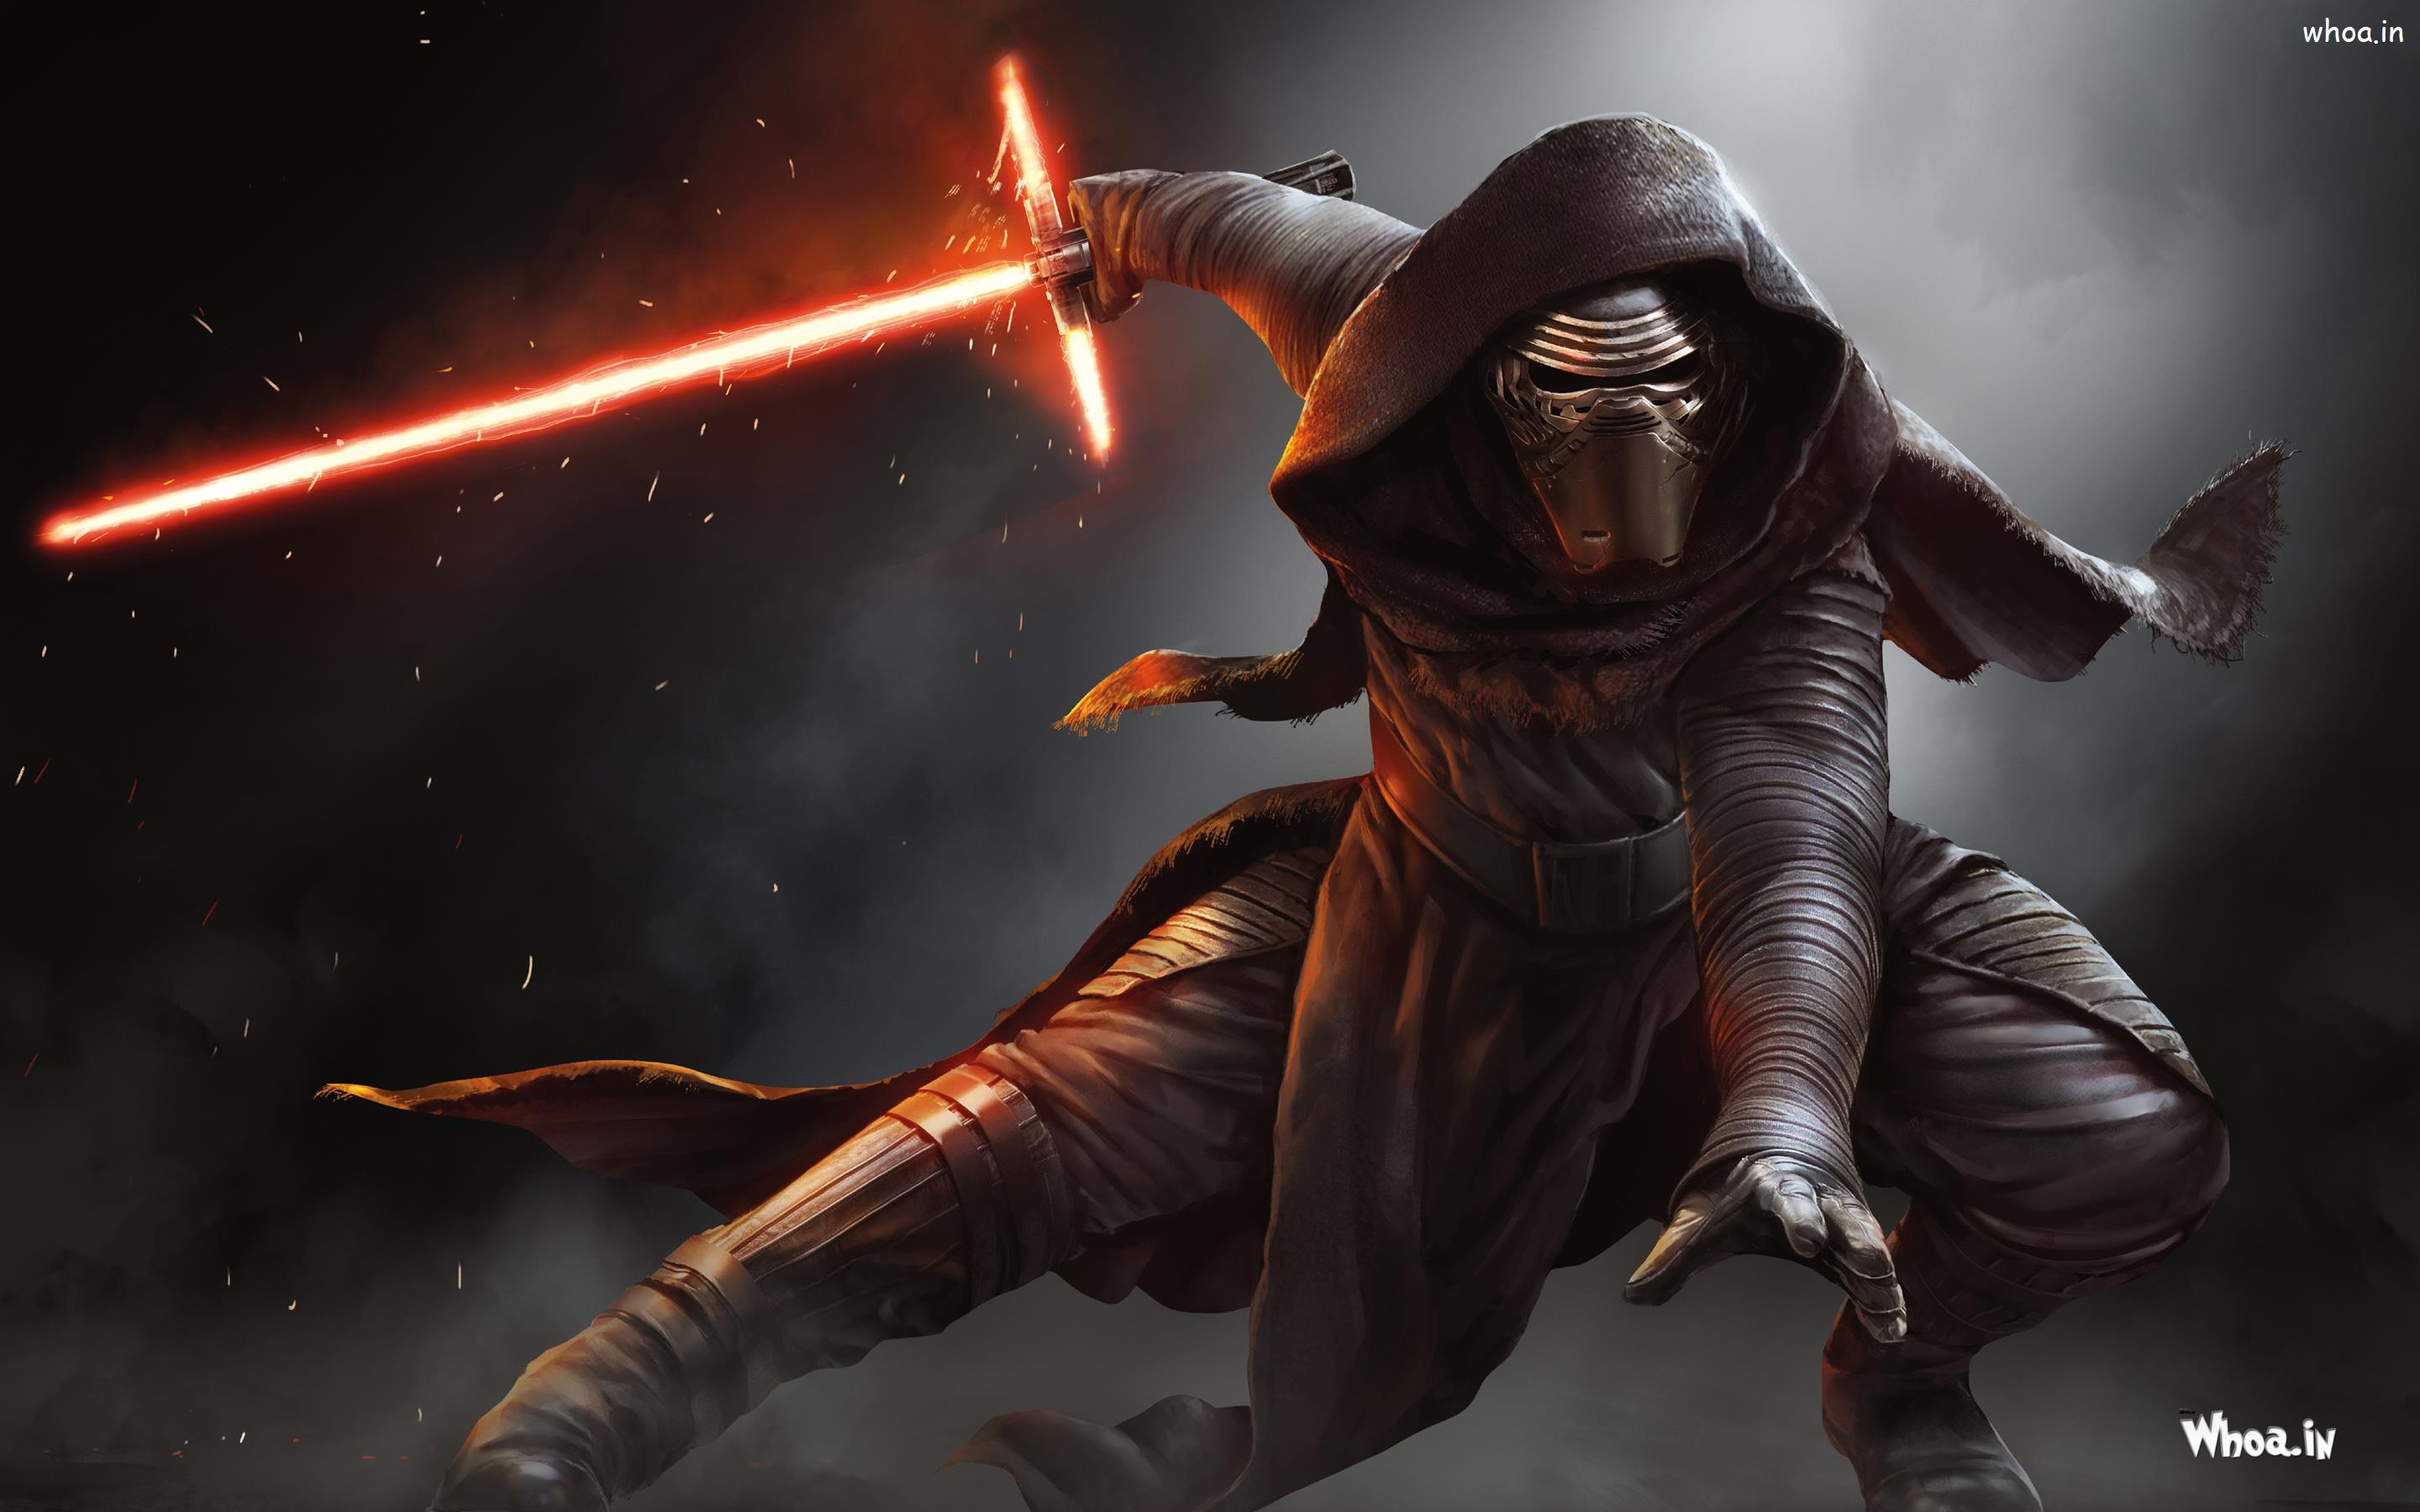 kylo ren in star wars hollywood action movies hd wallpaper